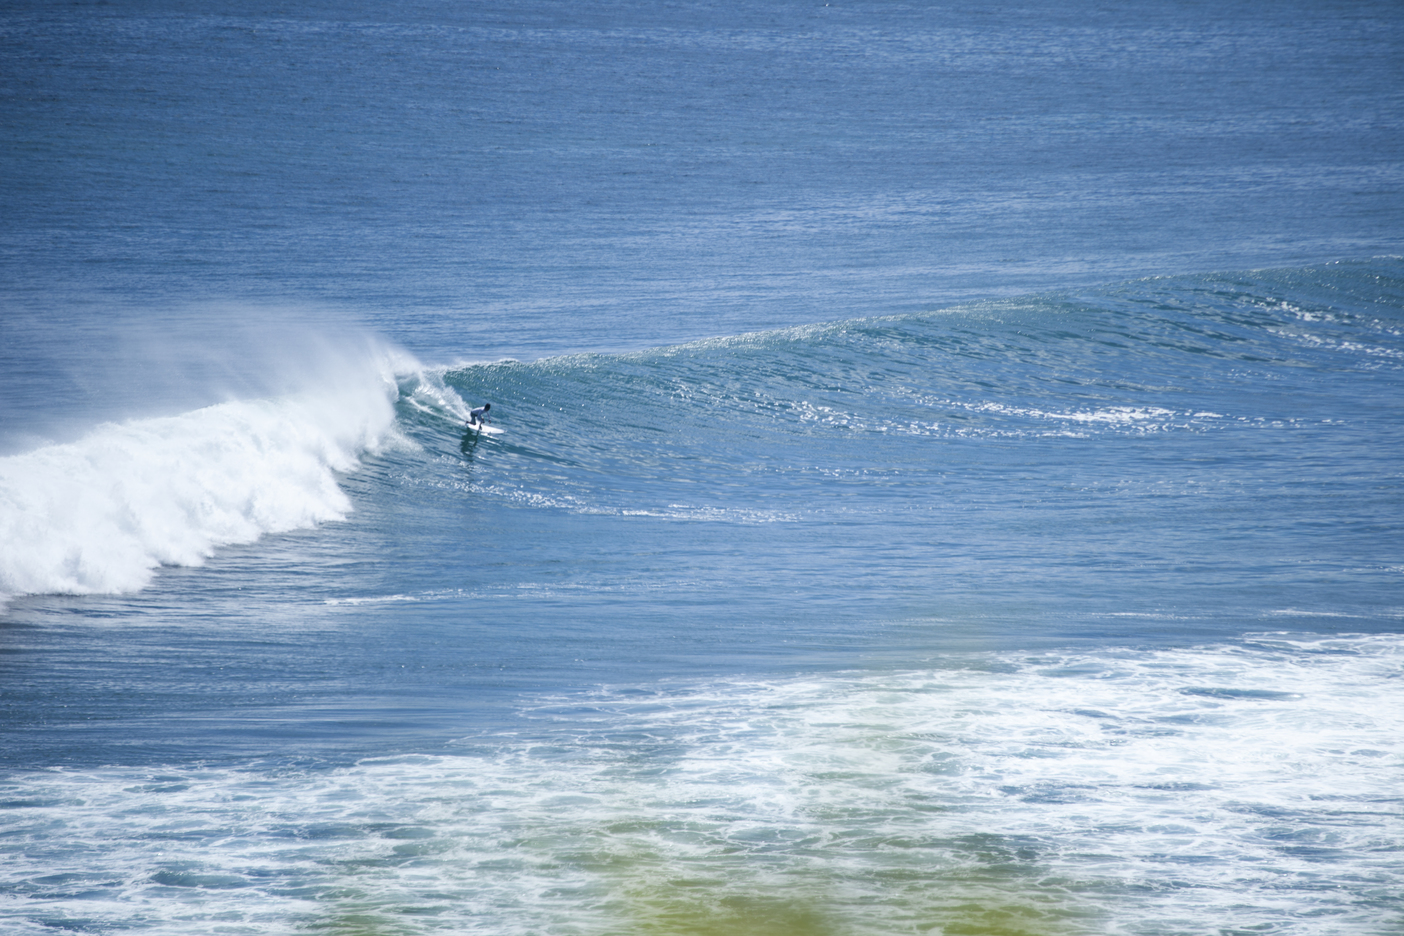 Anantara_Uluwatu_Surf_Wave_Collective.jpg